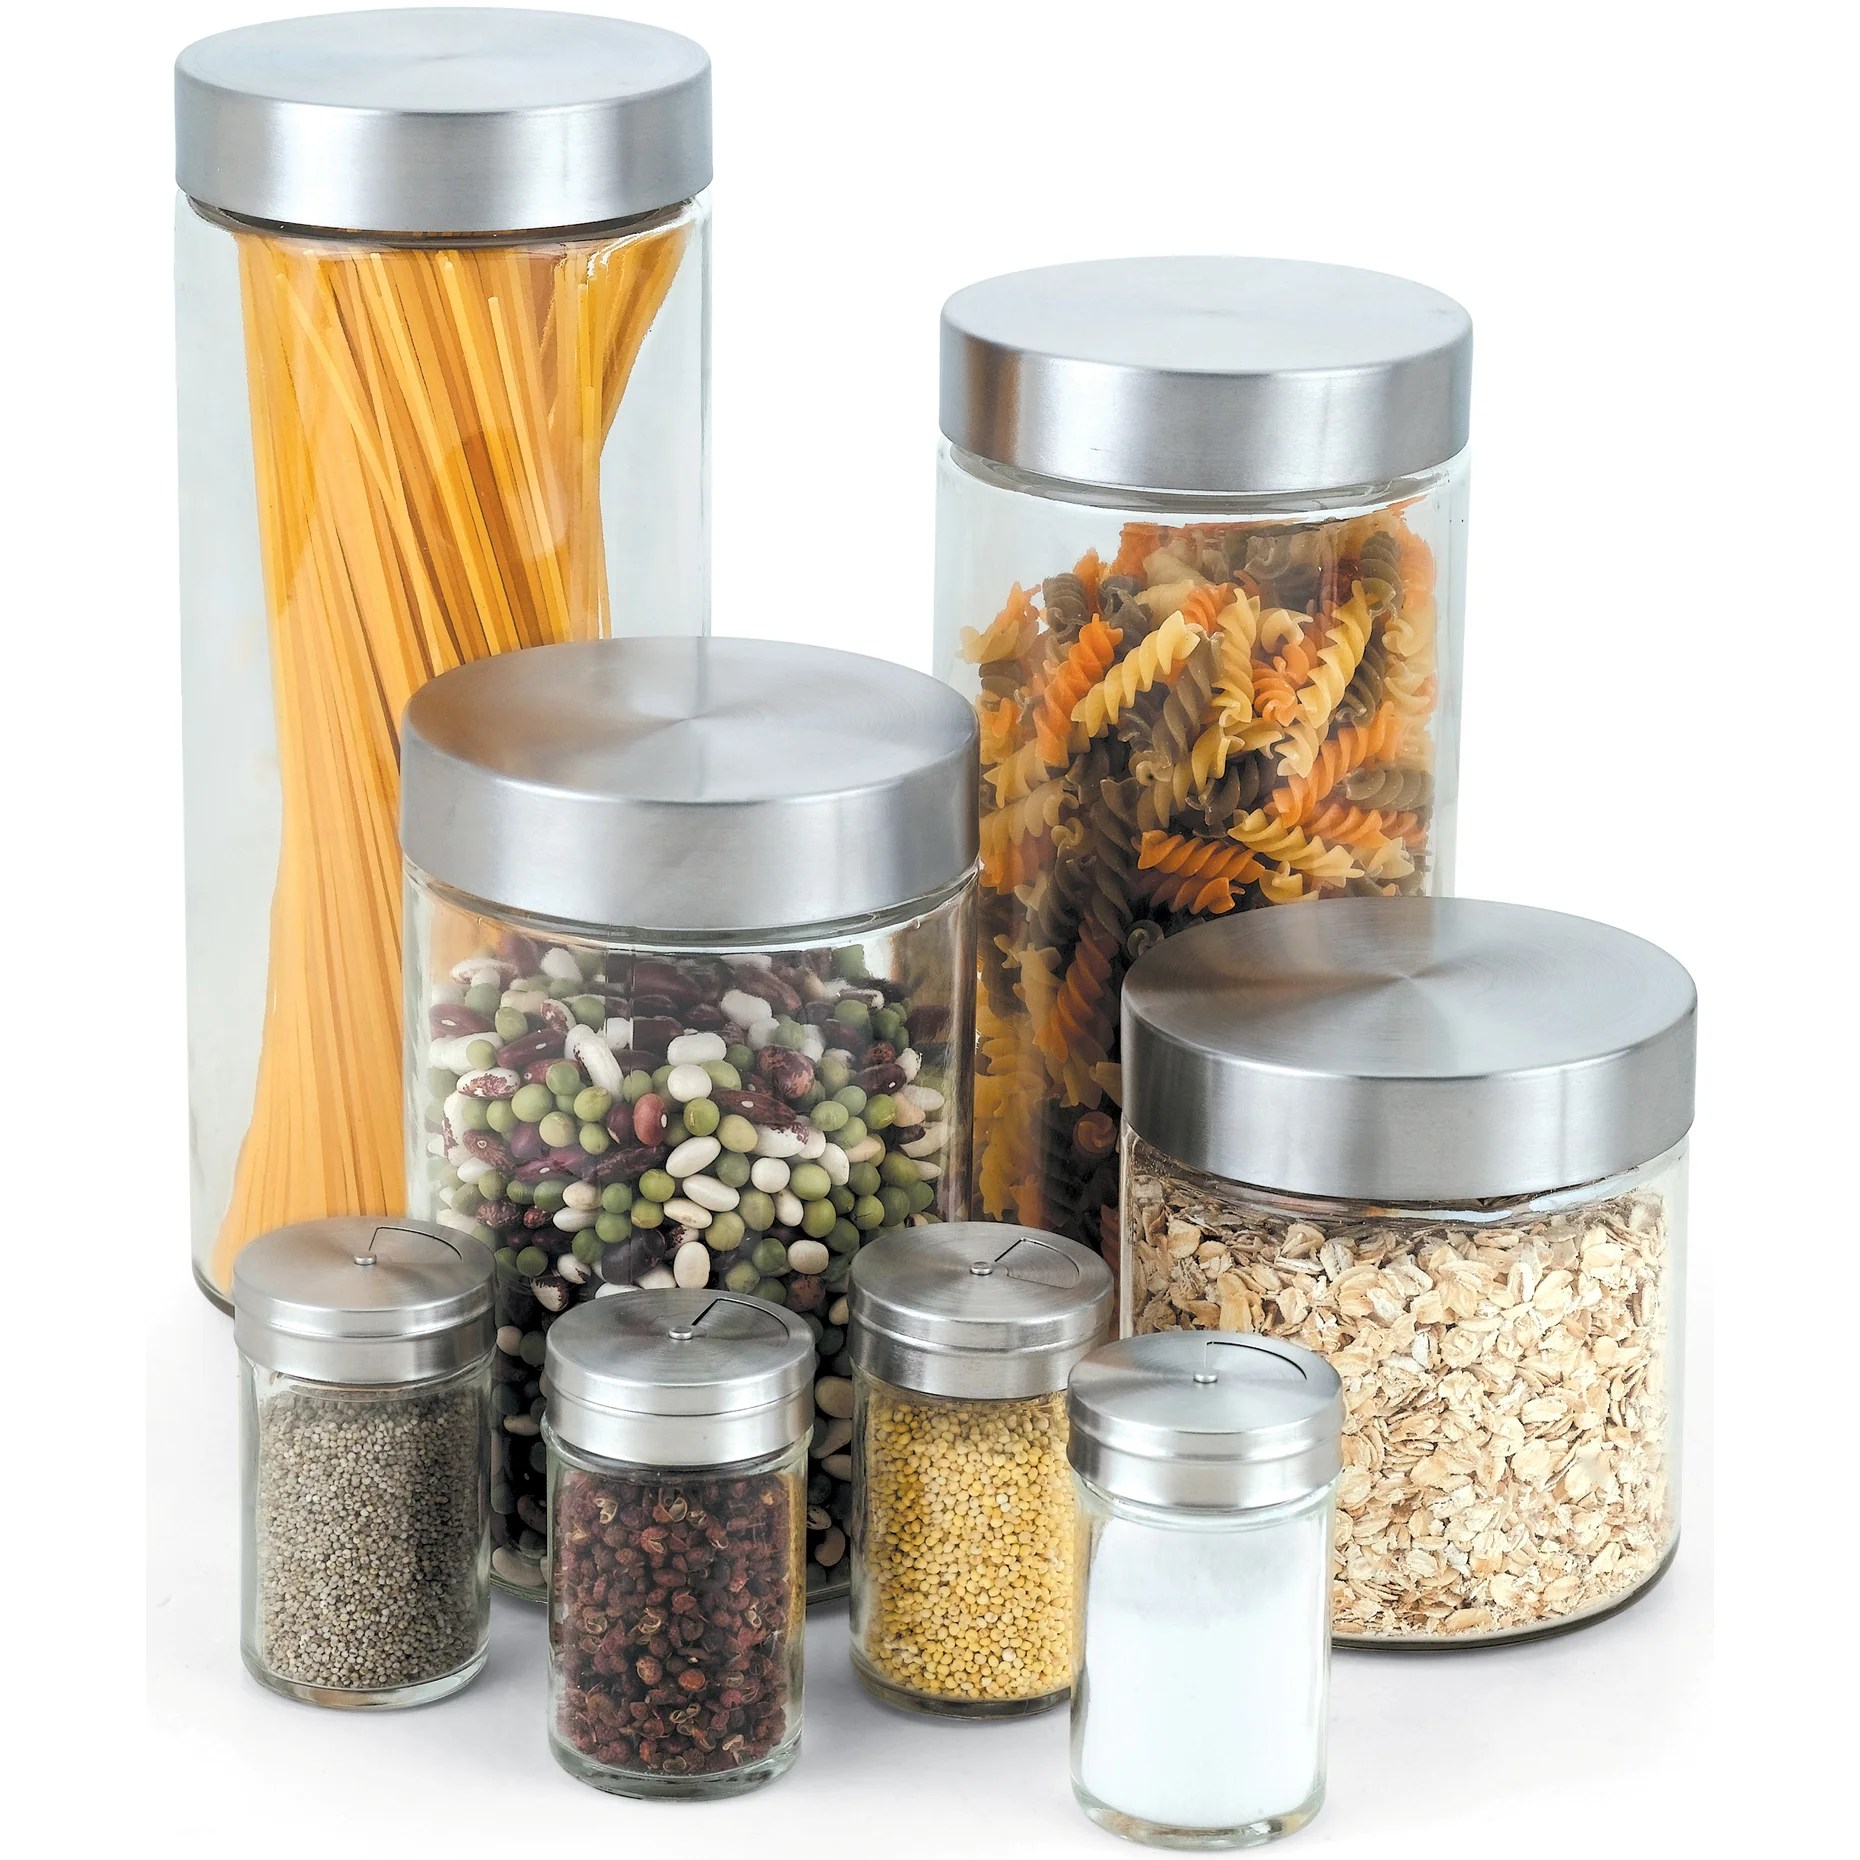 Shop Cook N Home 8 Piece Glass Canister And Spice Jar Set With Lids